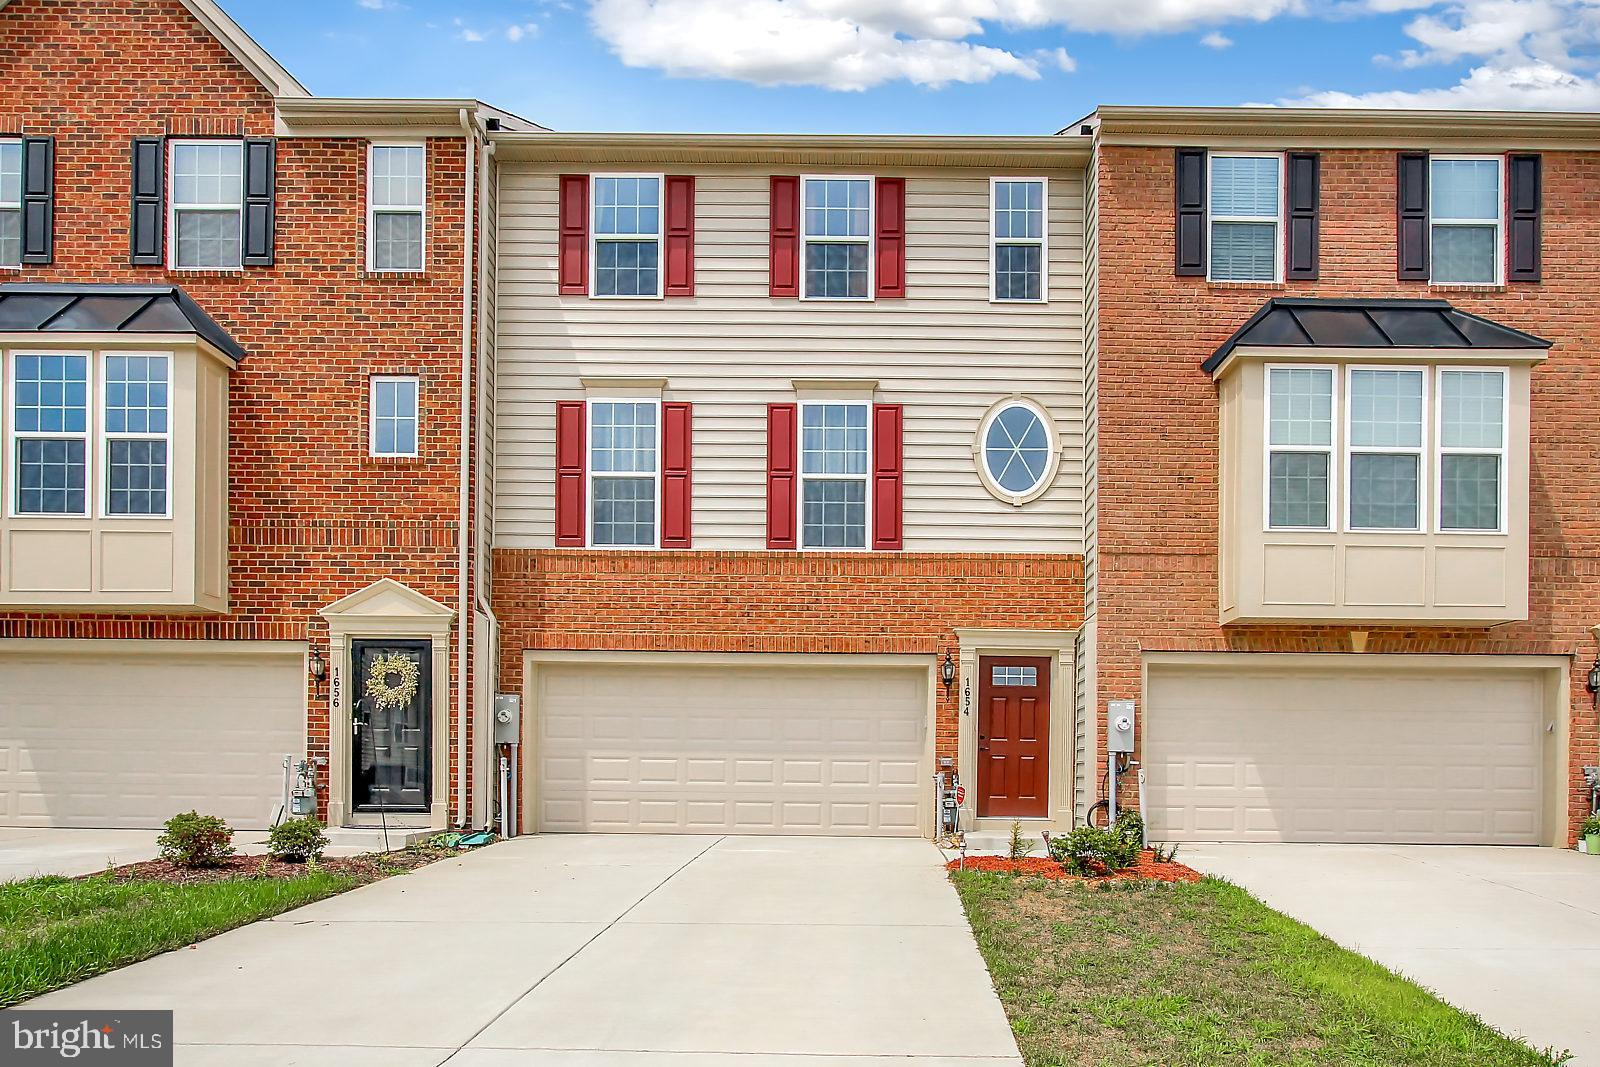 Remarkable 3Bdr/2.5Ba Luxury Townhome w/attached Garage located in beautiful Greenway Farms! 3-Fully